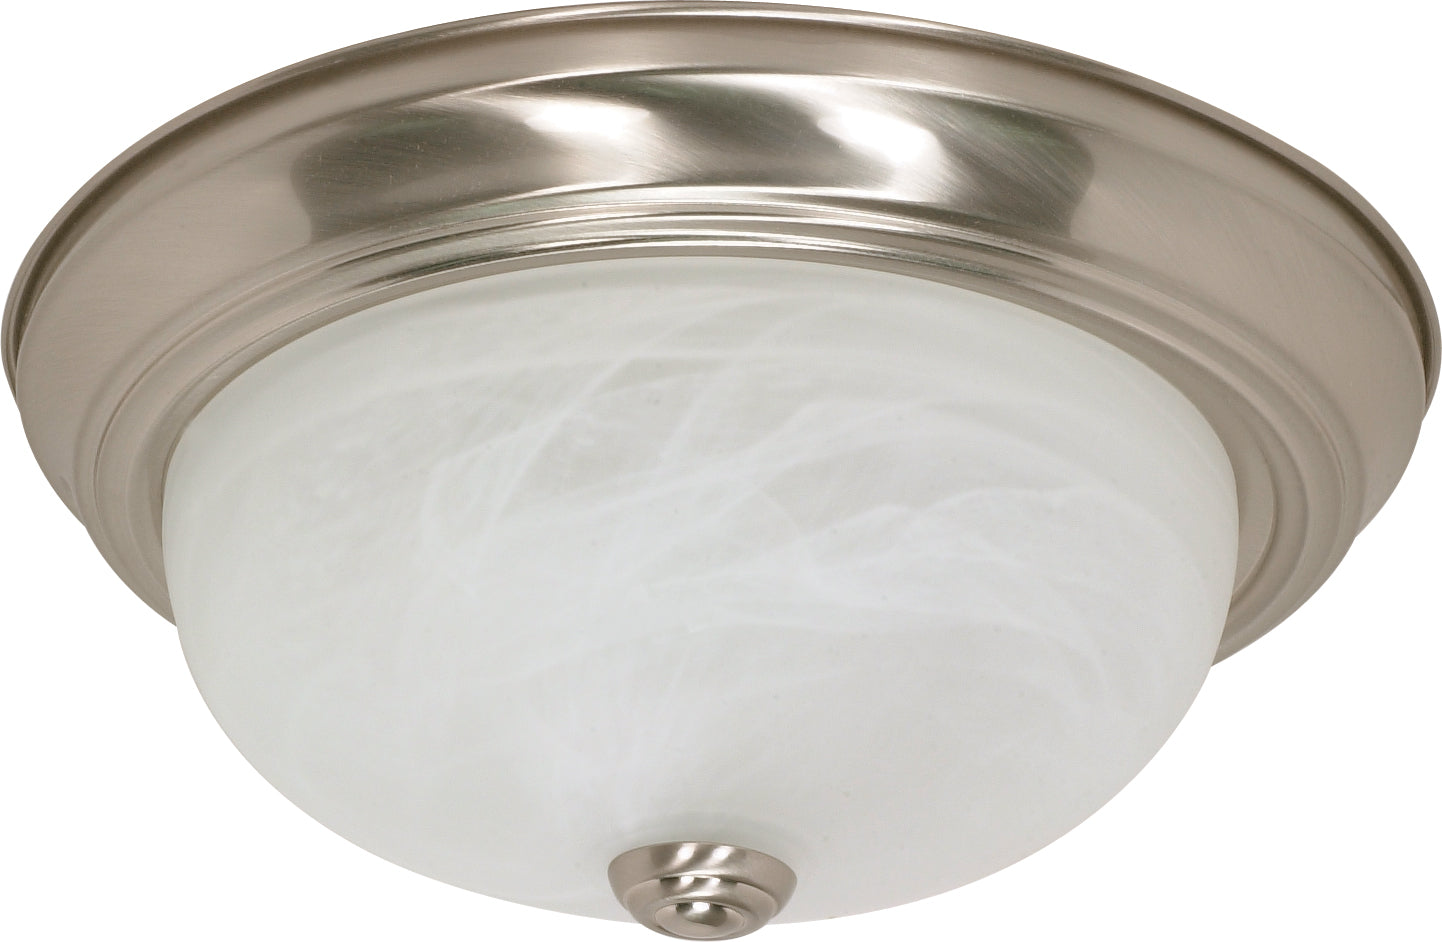 "Nuvo 2-Light 13"" Ceiling Flush Mount w/ Alabaster Glass in Brushed Nickel Finish"